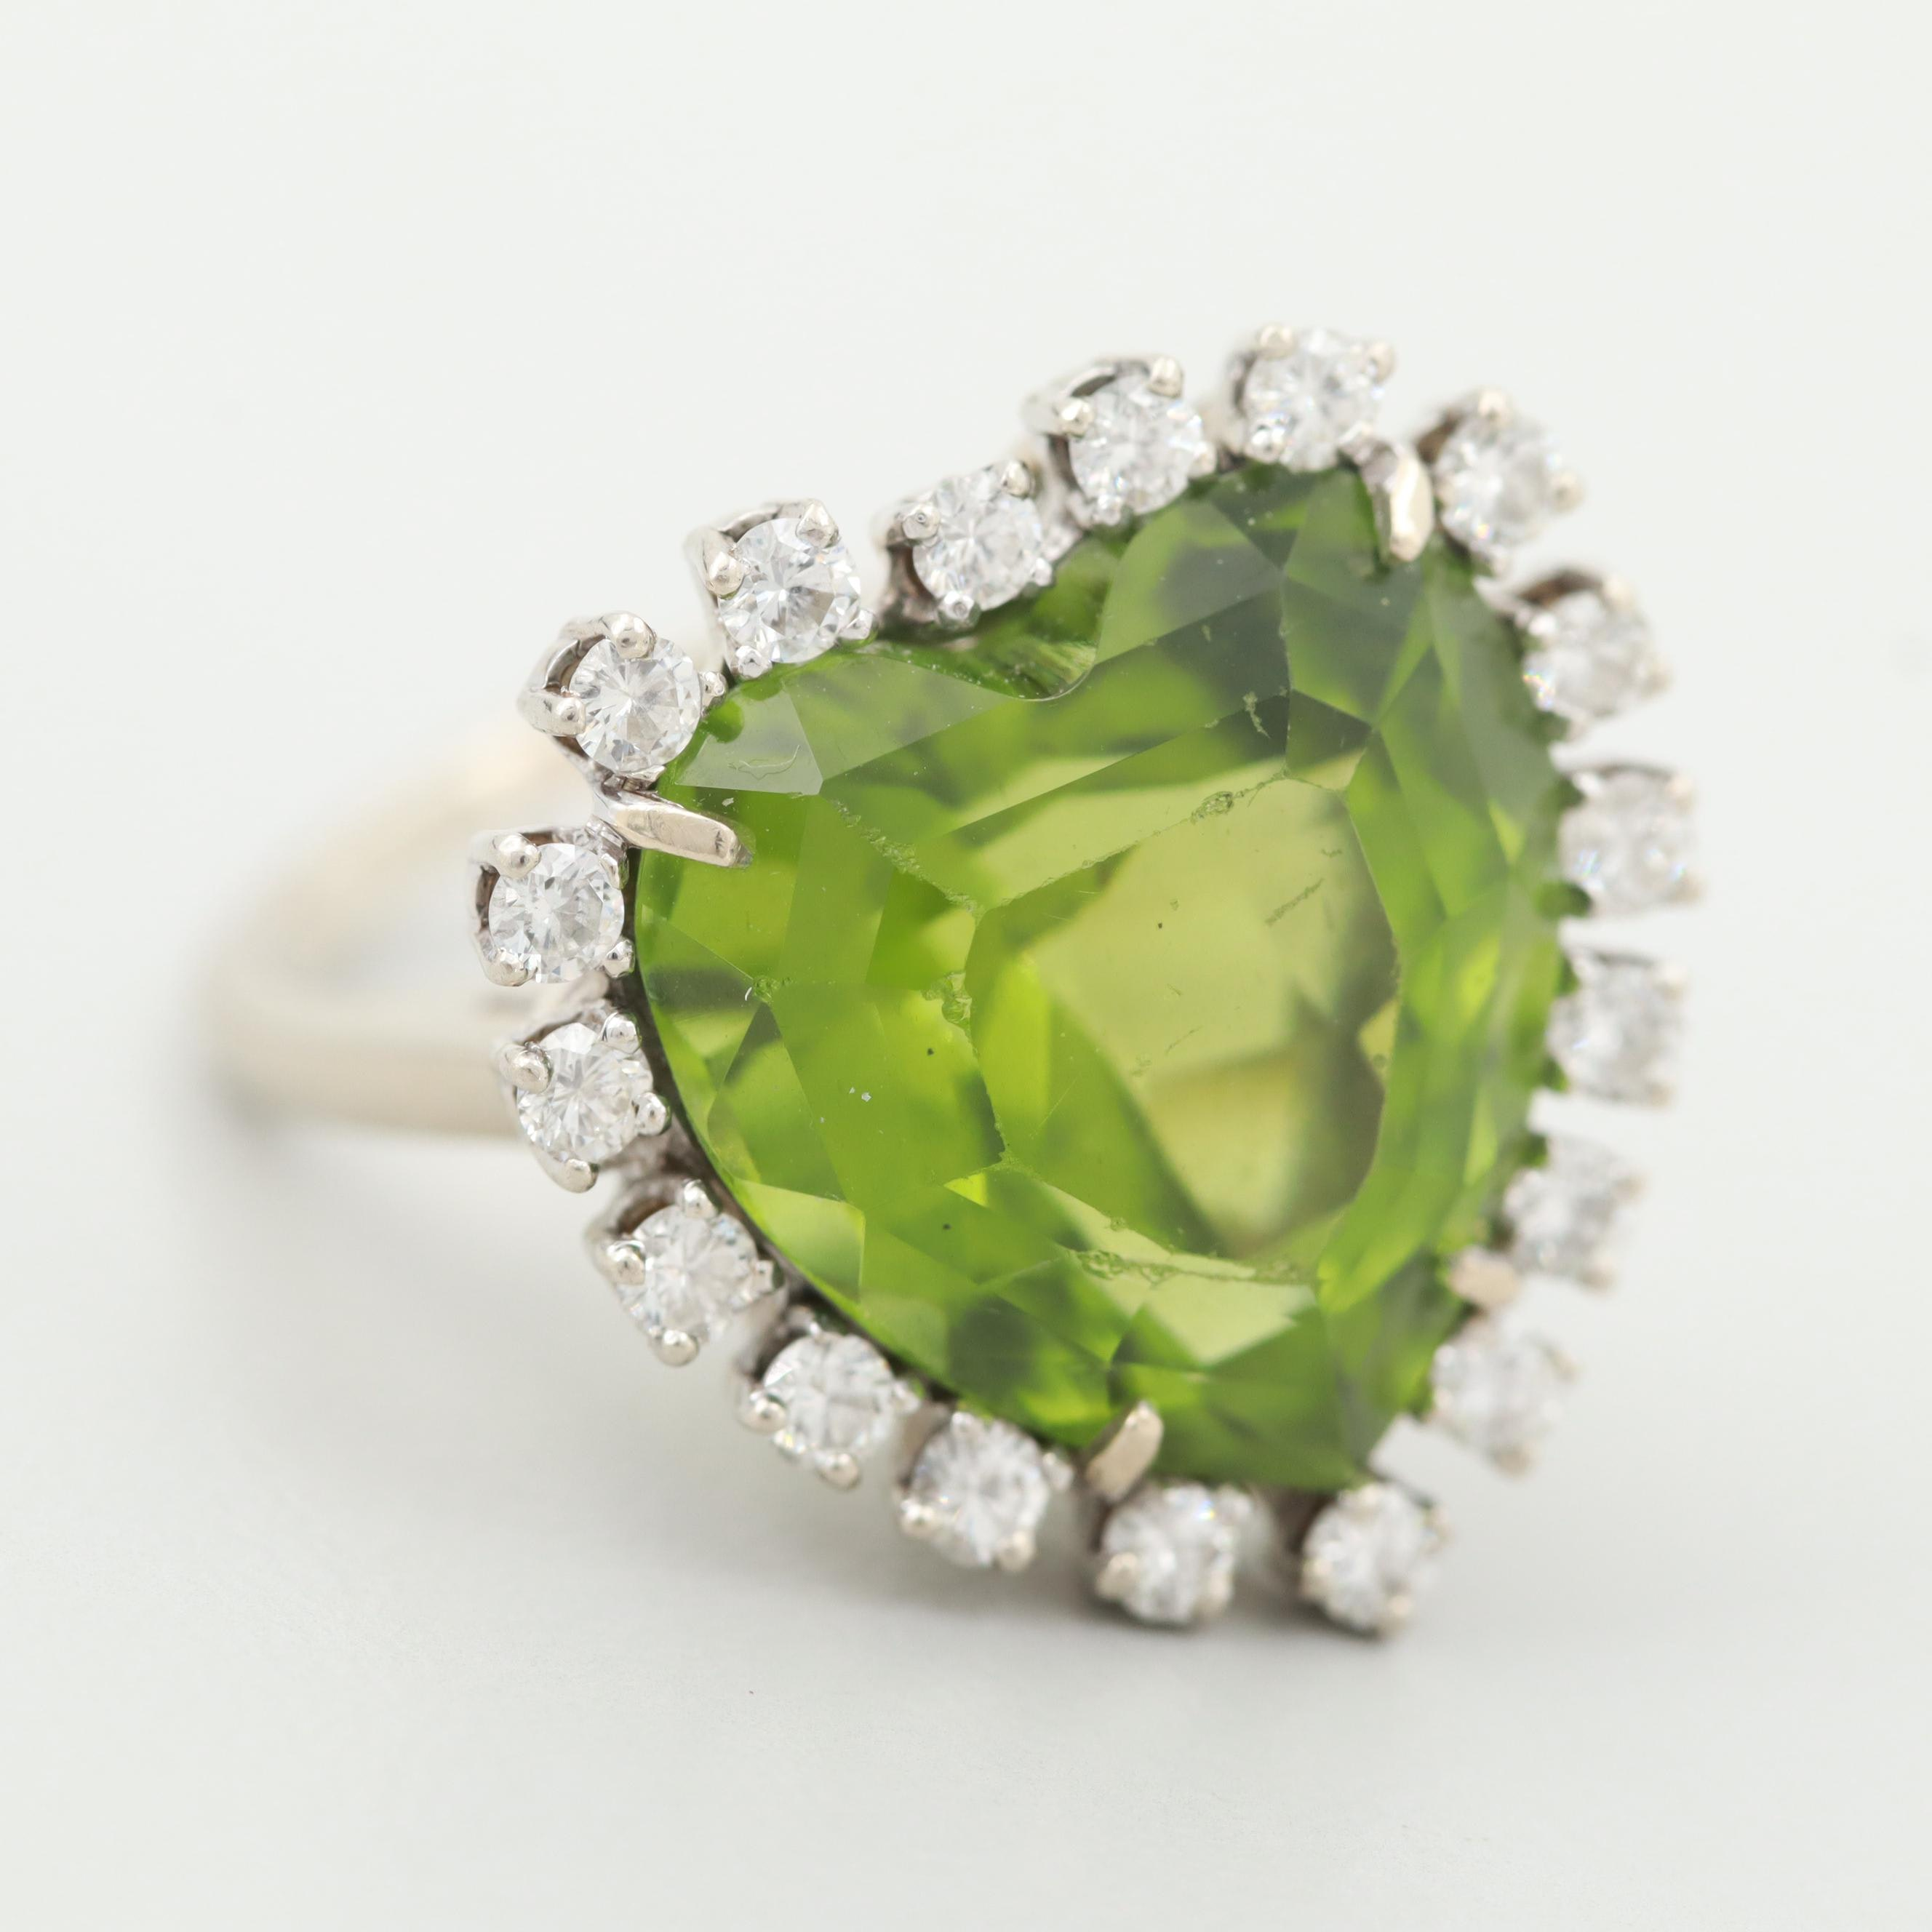 Vintage 14K White Gold Peridot Heart Ring with Diamond Halo